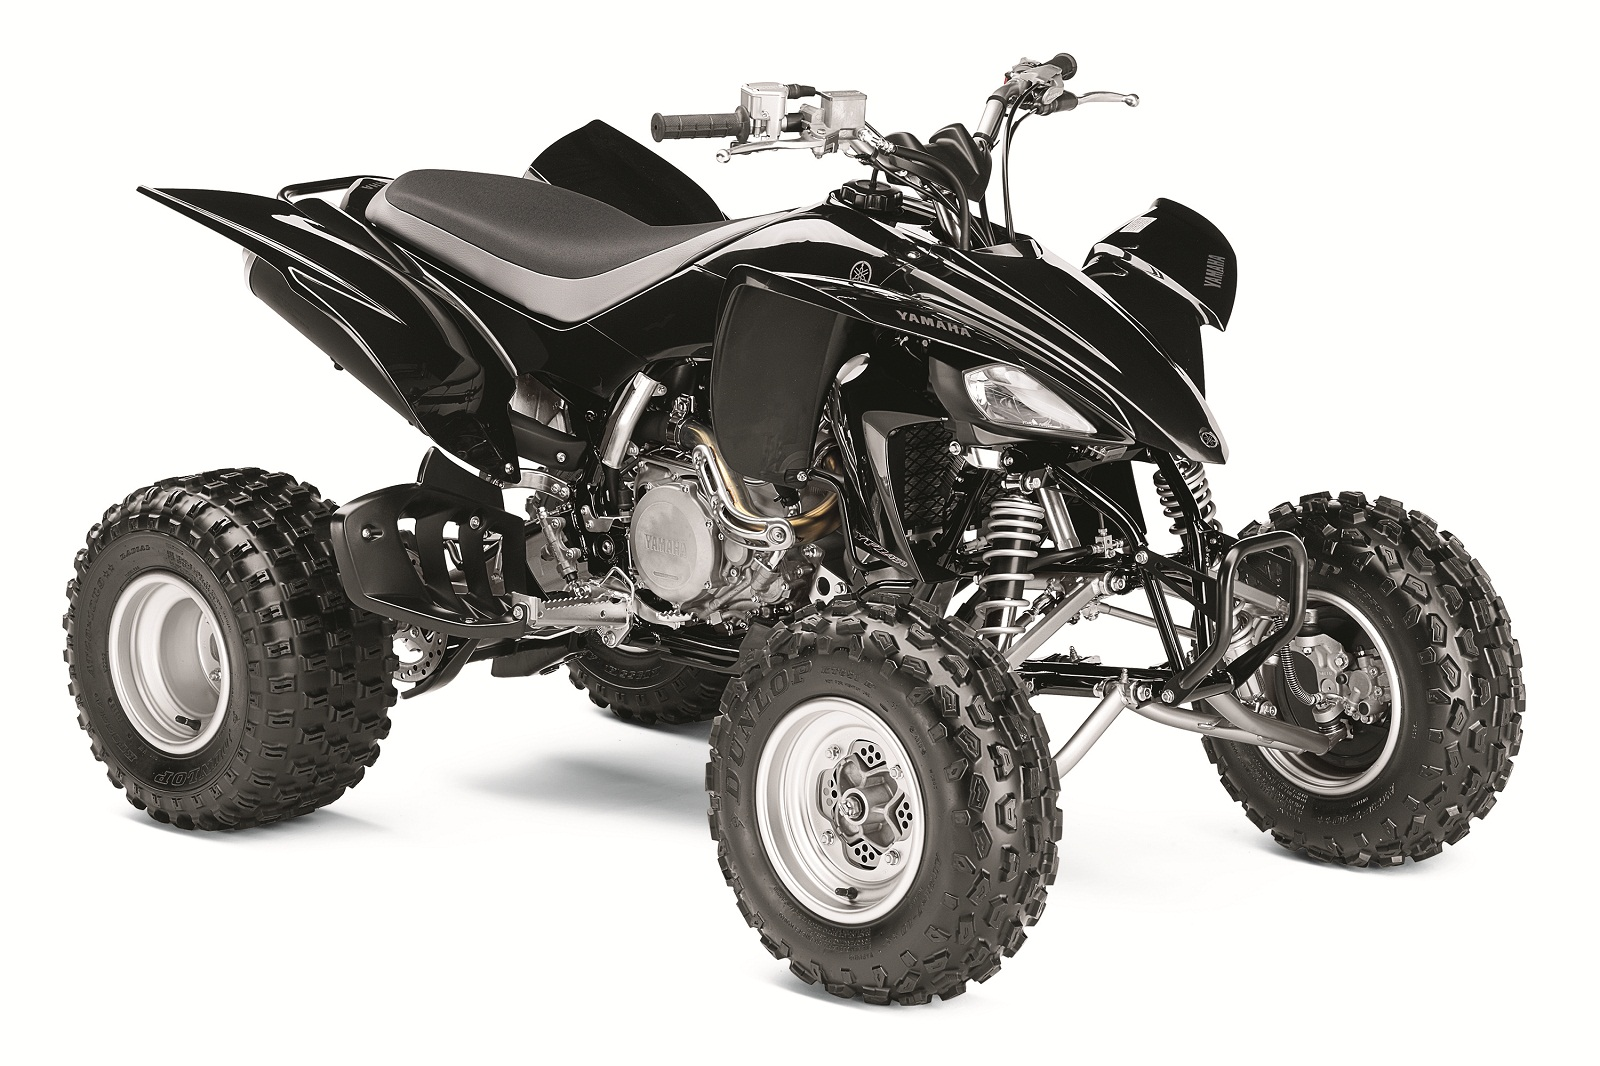 2012 Yamaha YFZ 450 | Top Speed